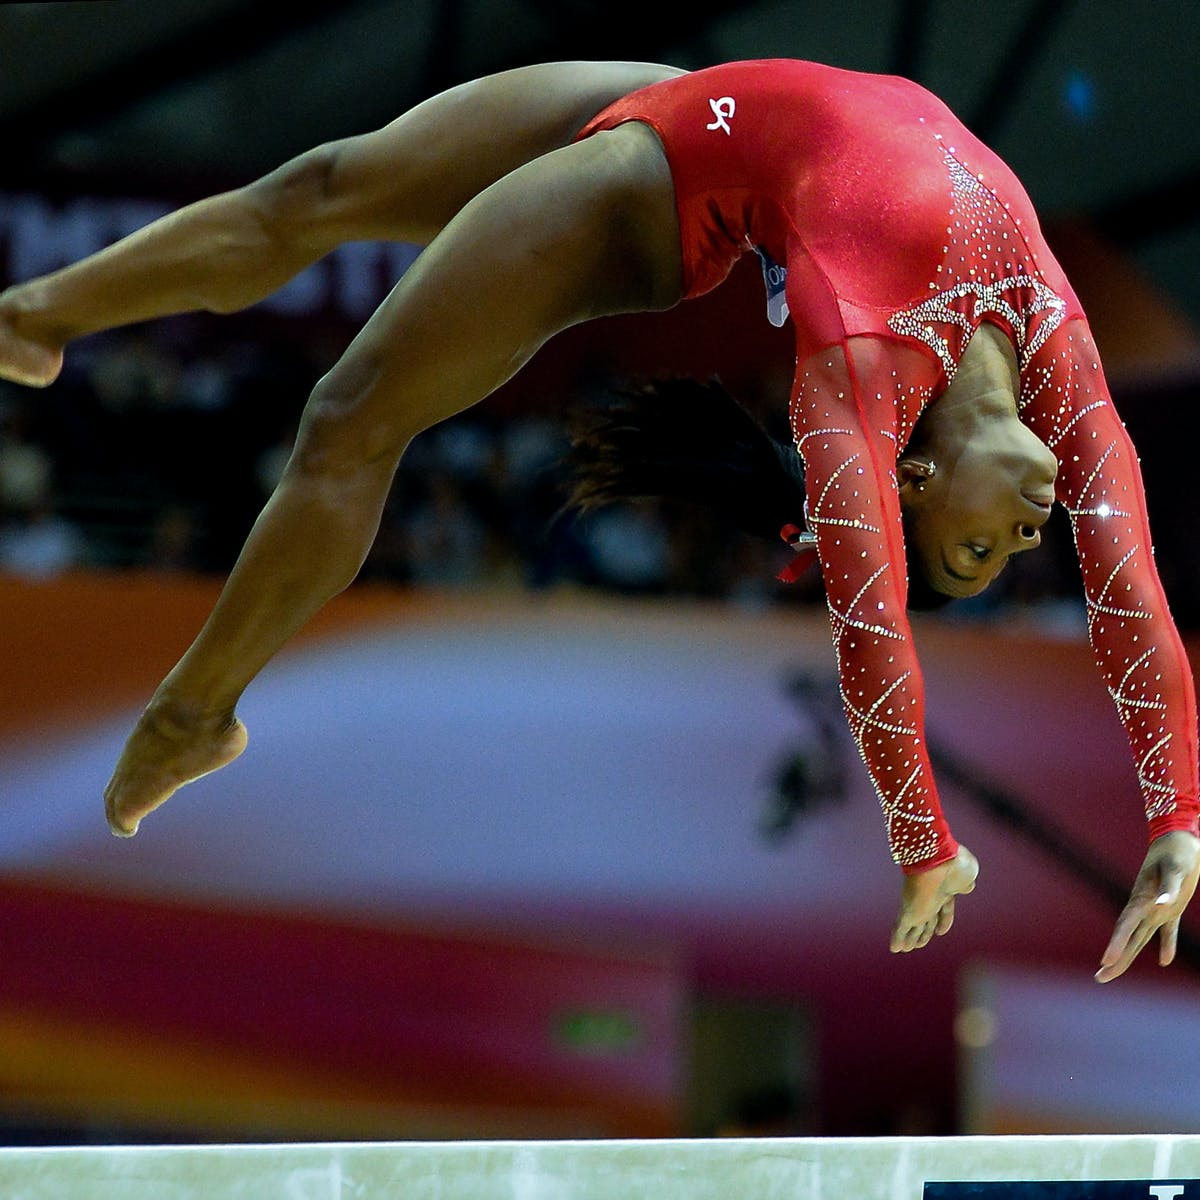 Gymnastics Current Events 2020.Friday Essay From Delicate Teens To Fierce Women Simone